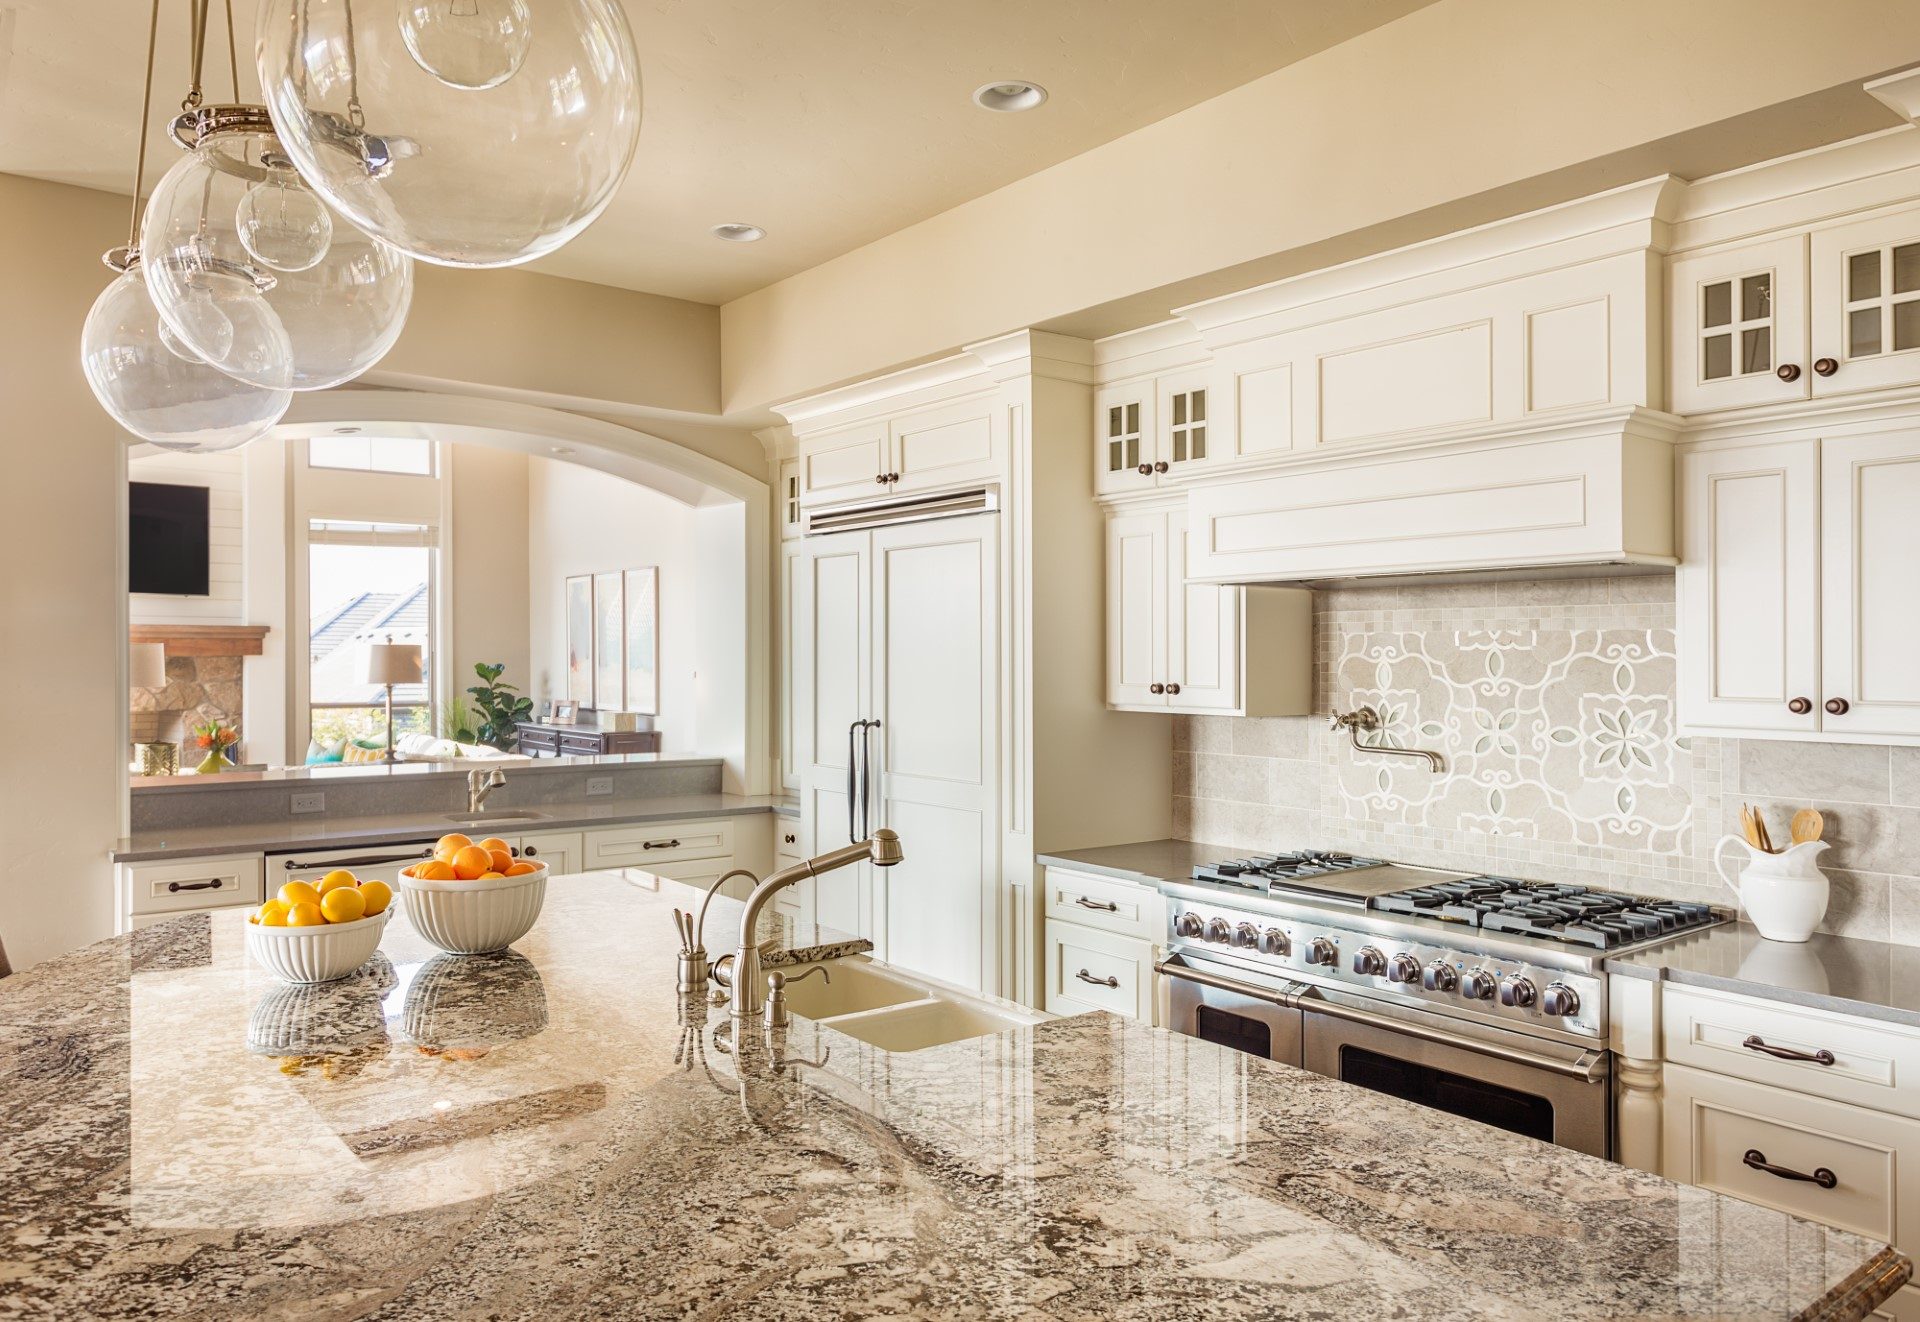 This is a beautiful kitchen design with a granite slab that is sure to amaze. A kitchen like this gives off a Cape Cod type of ambiance, and the best part is it has two sinks so your kids can do dishes with you.